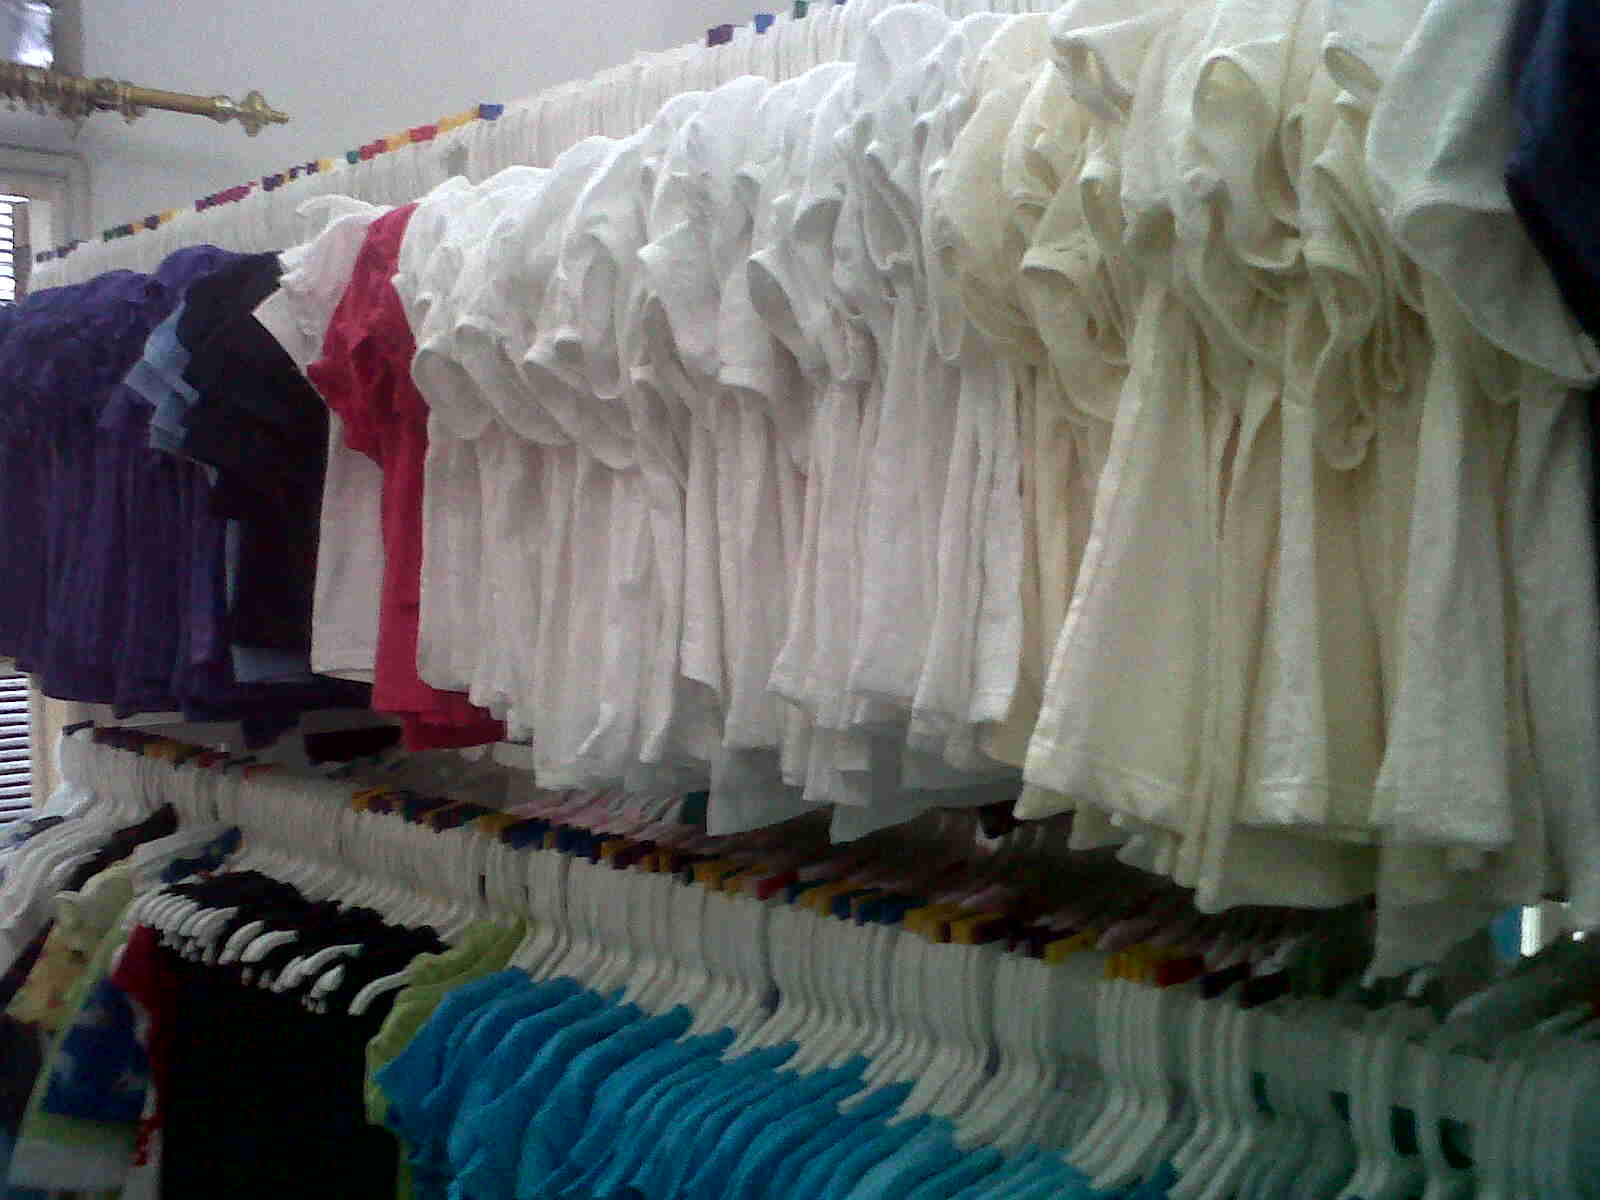 Grosir-Distributor-Supplier Baju Branded Stocklot Original